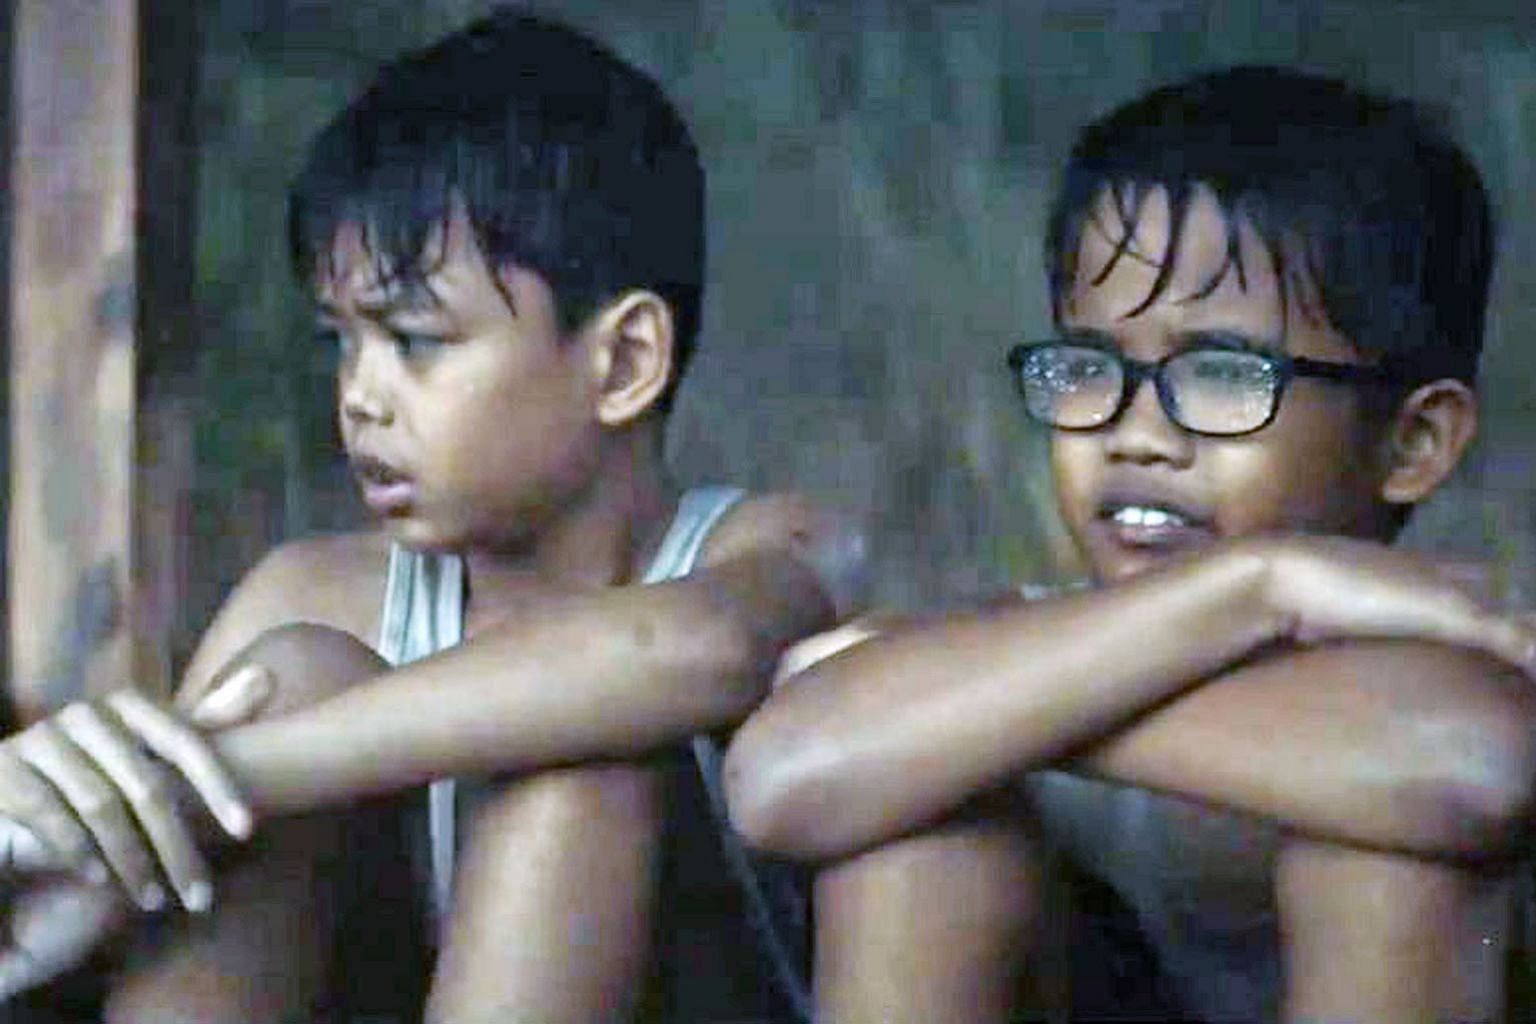 PUB's Hari Raya short film, Kinship, which tells the story of two orphaned brothers, Din (far left) and Zul, is part of its year-long water conservation campaign to drive home the point that everyone has a part to play in using water wisely. PHOTO: P